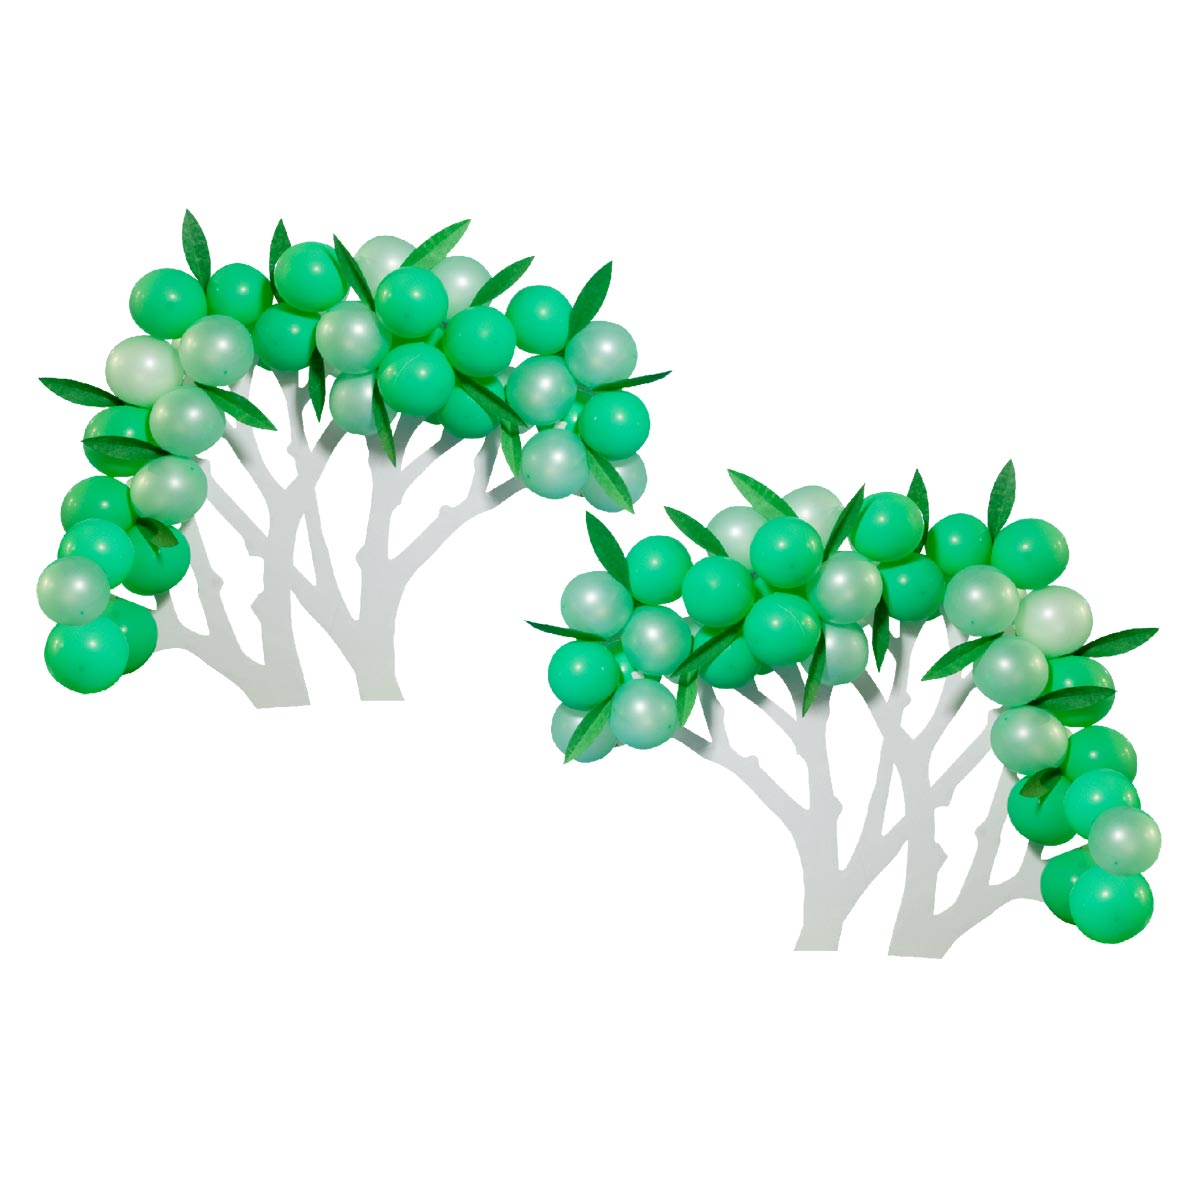 Emerald Escape Bushes Kit (set of 2)